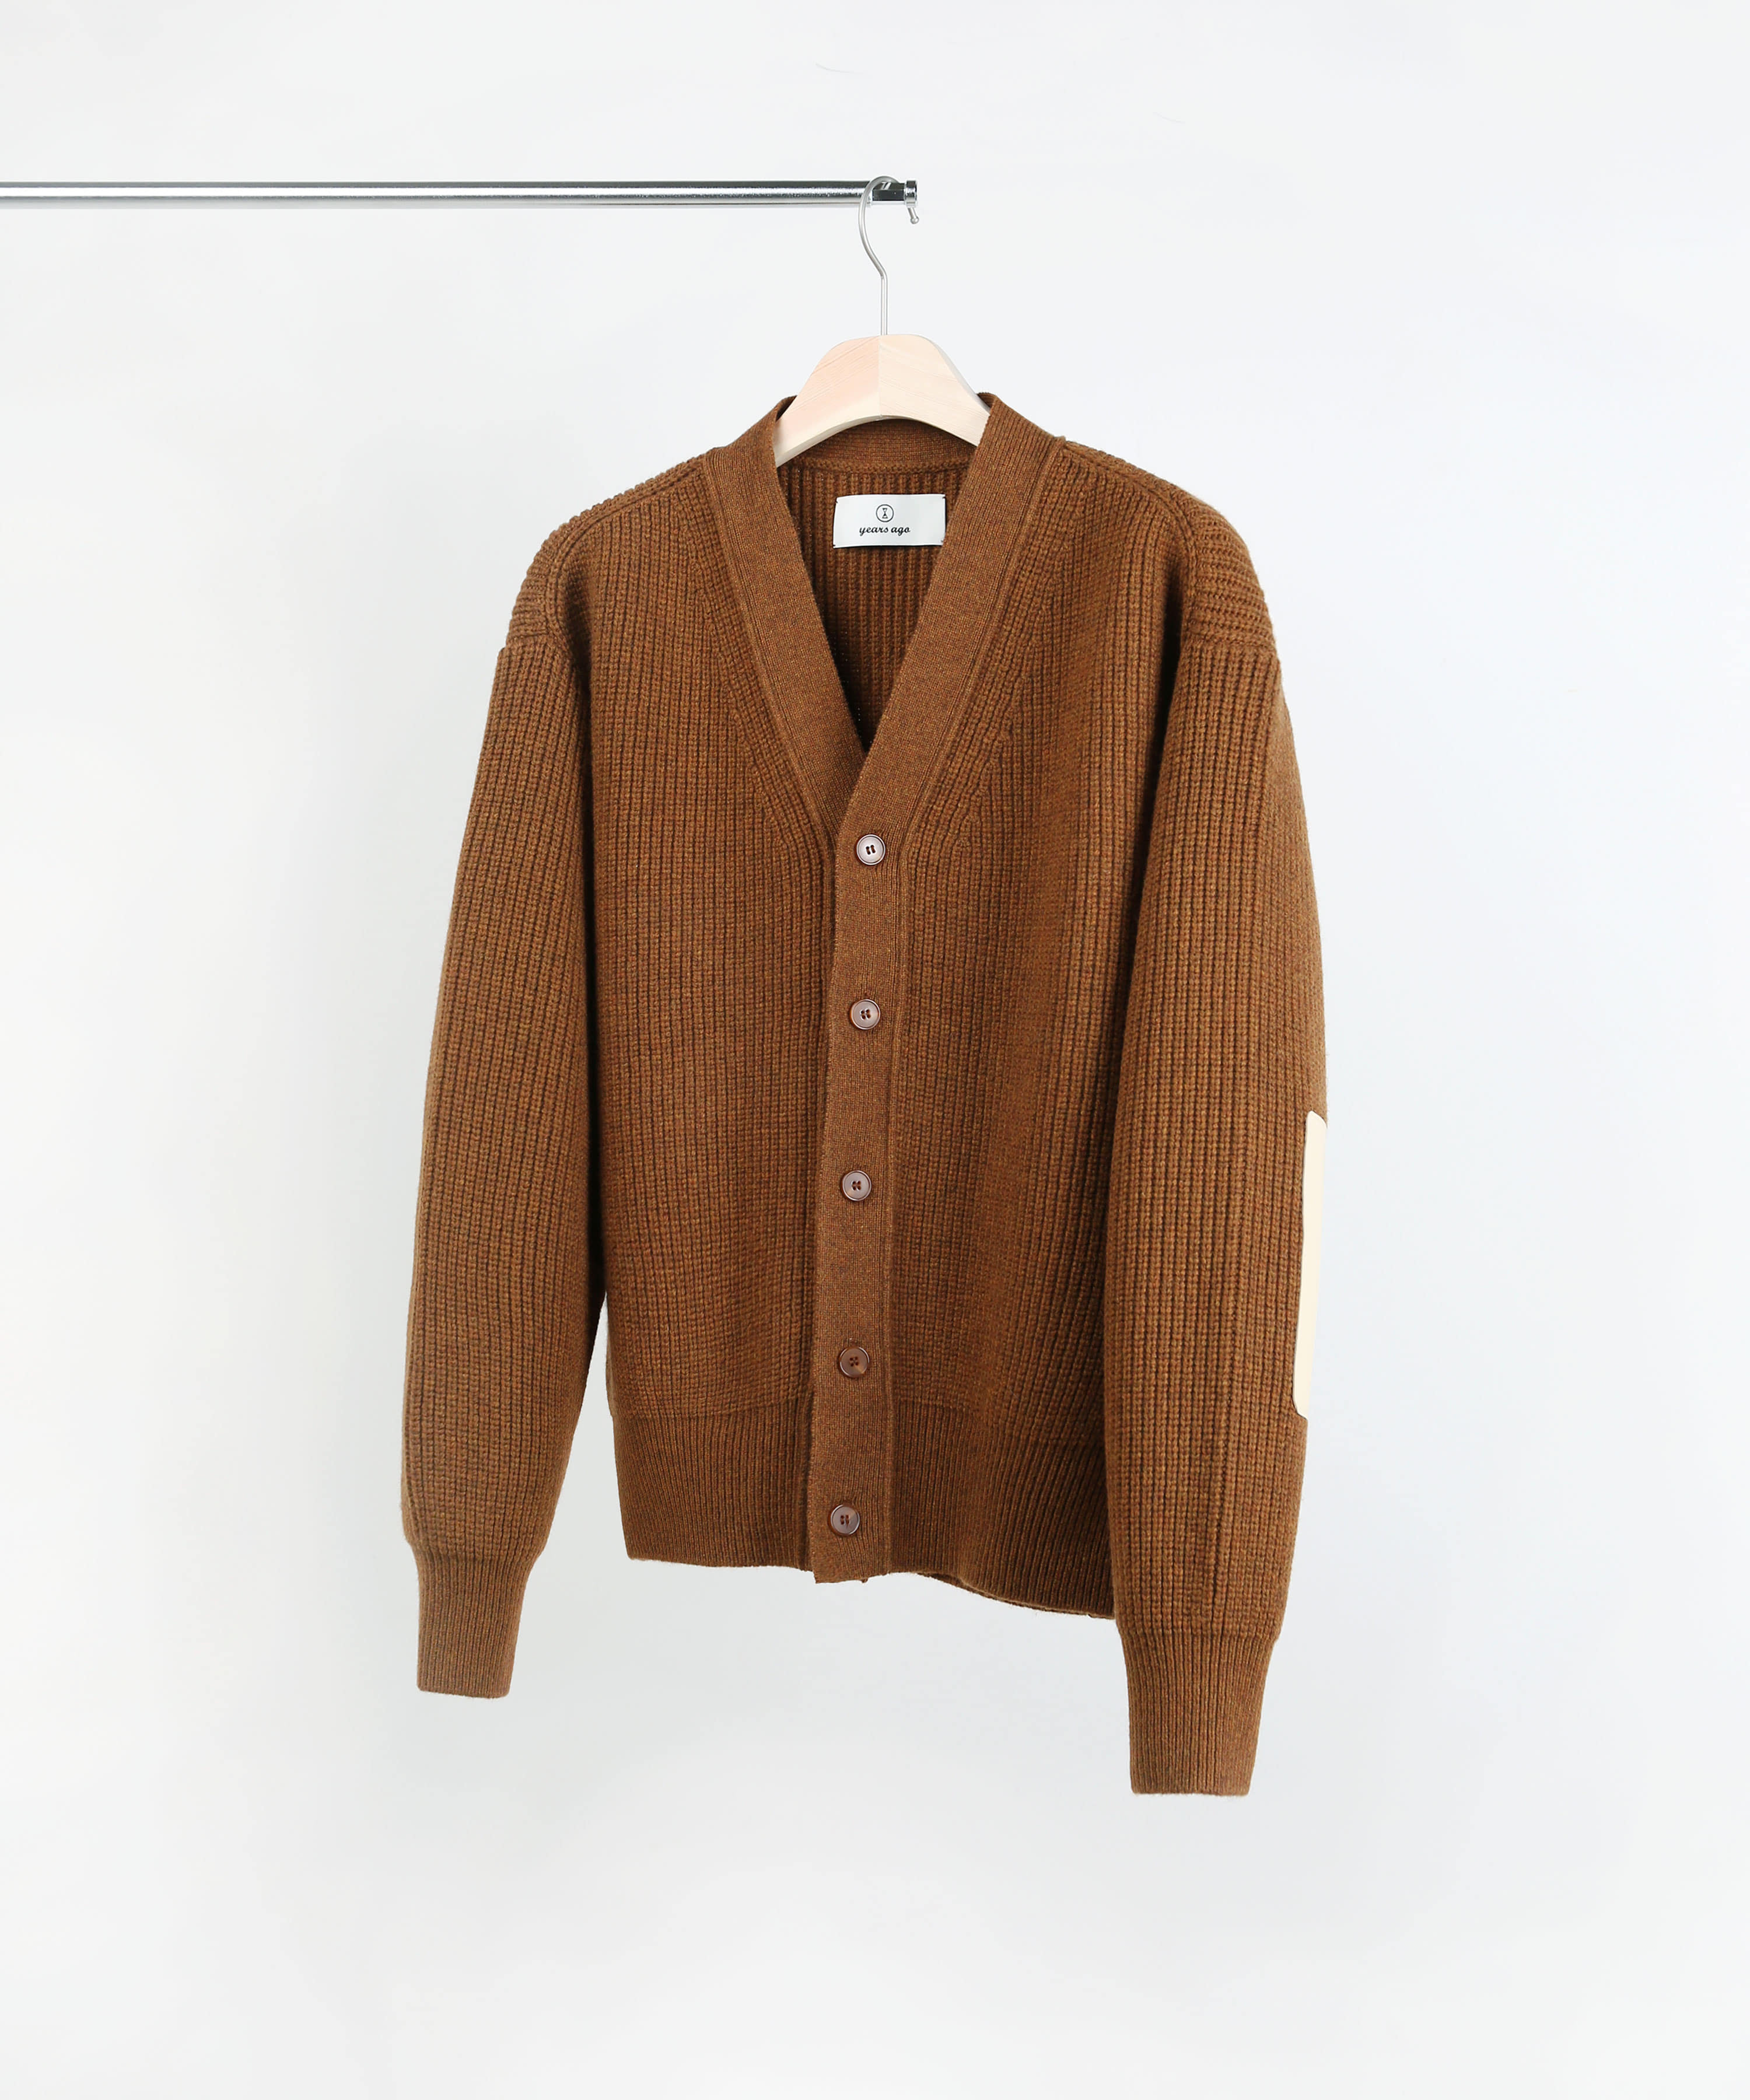 SIENNA MELANGE BROWN ROVER WOOL CARDIGAN 01-2